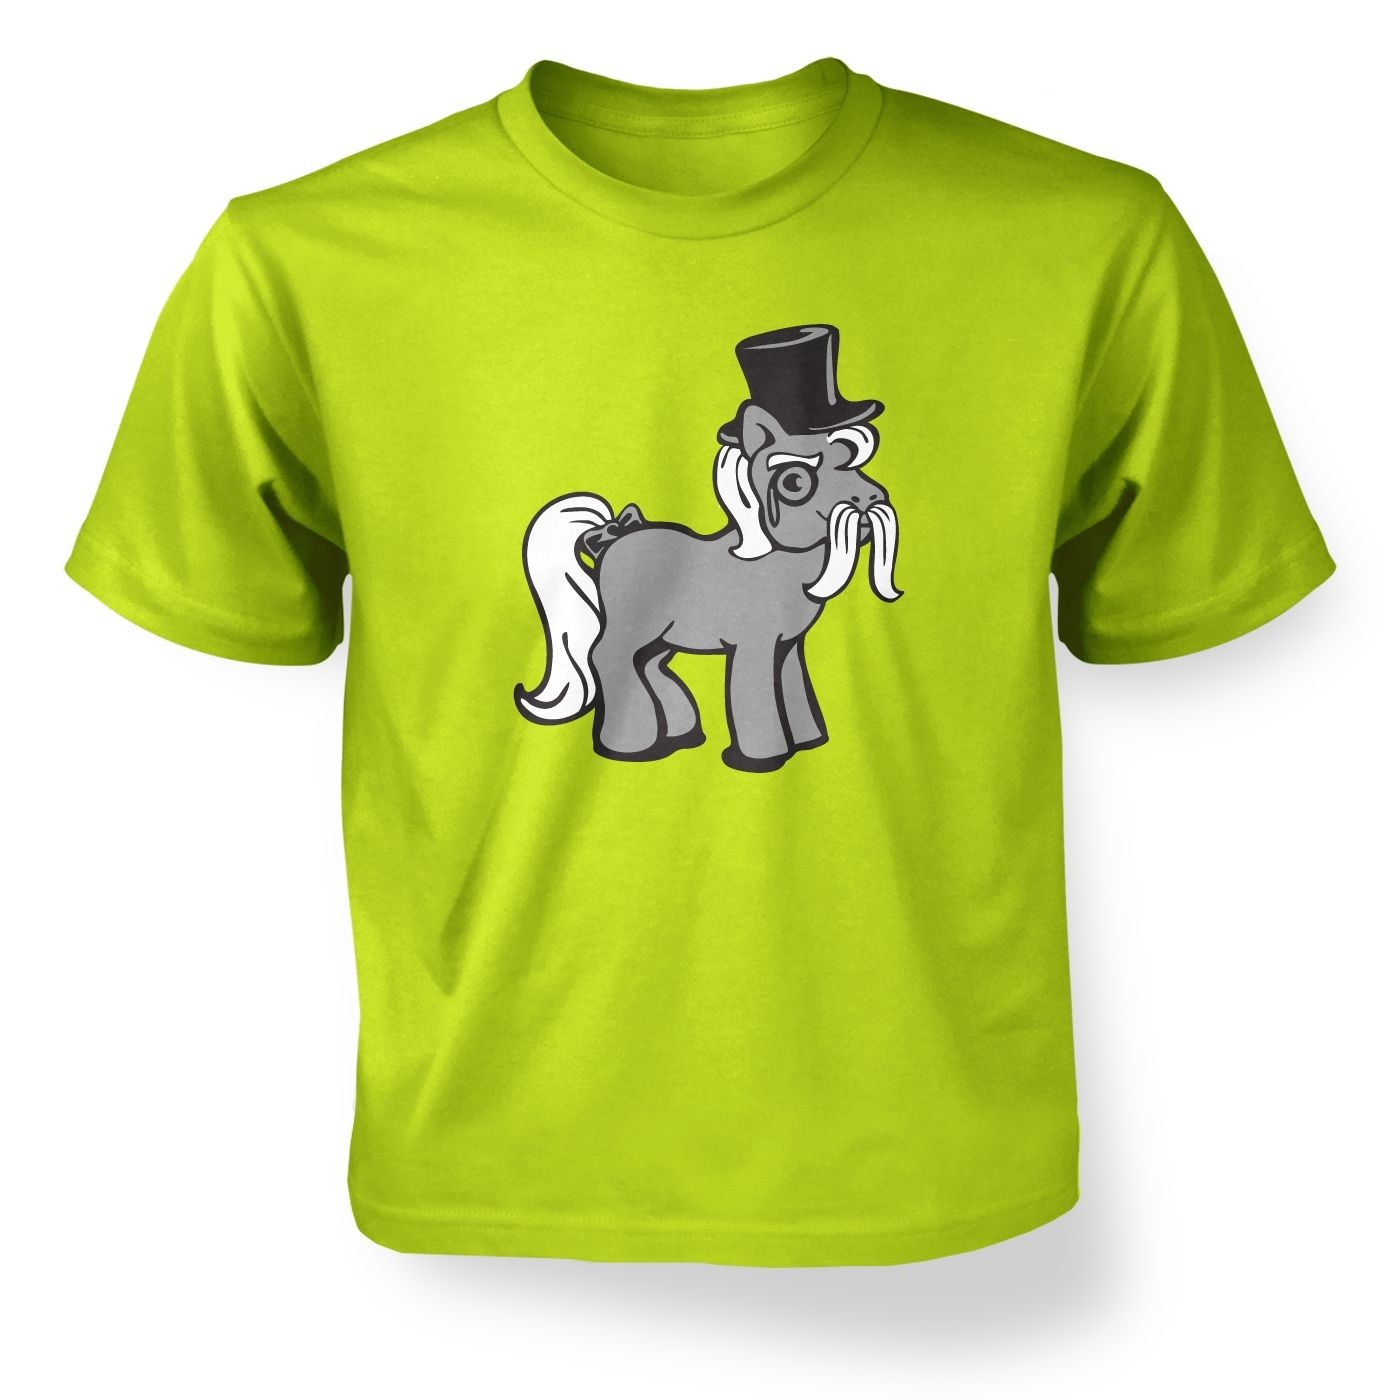 Top Hat Pony Kids' T-shirt